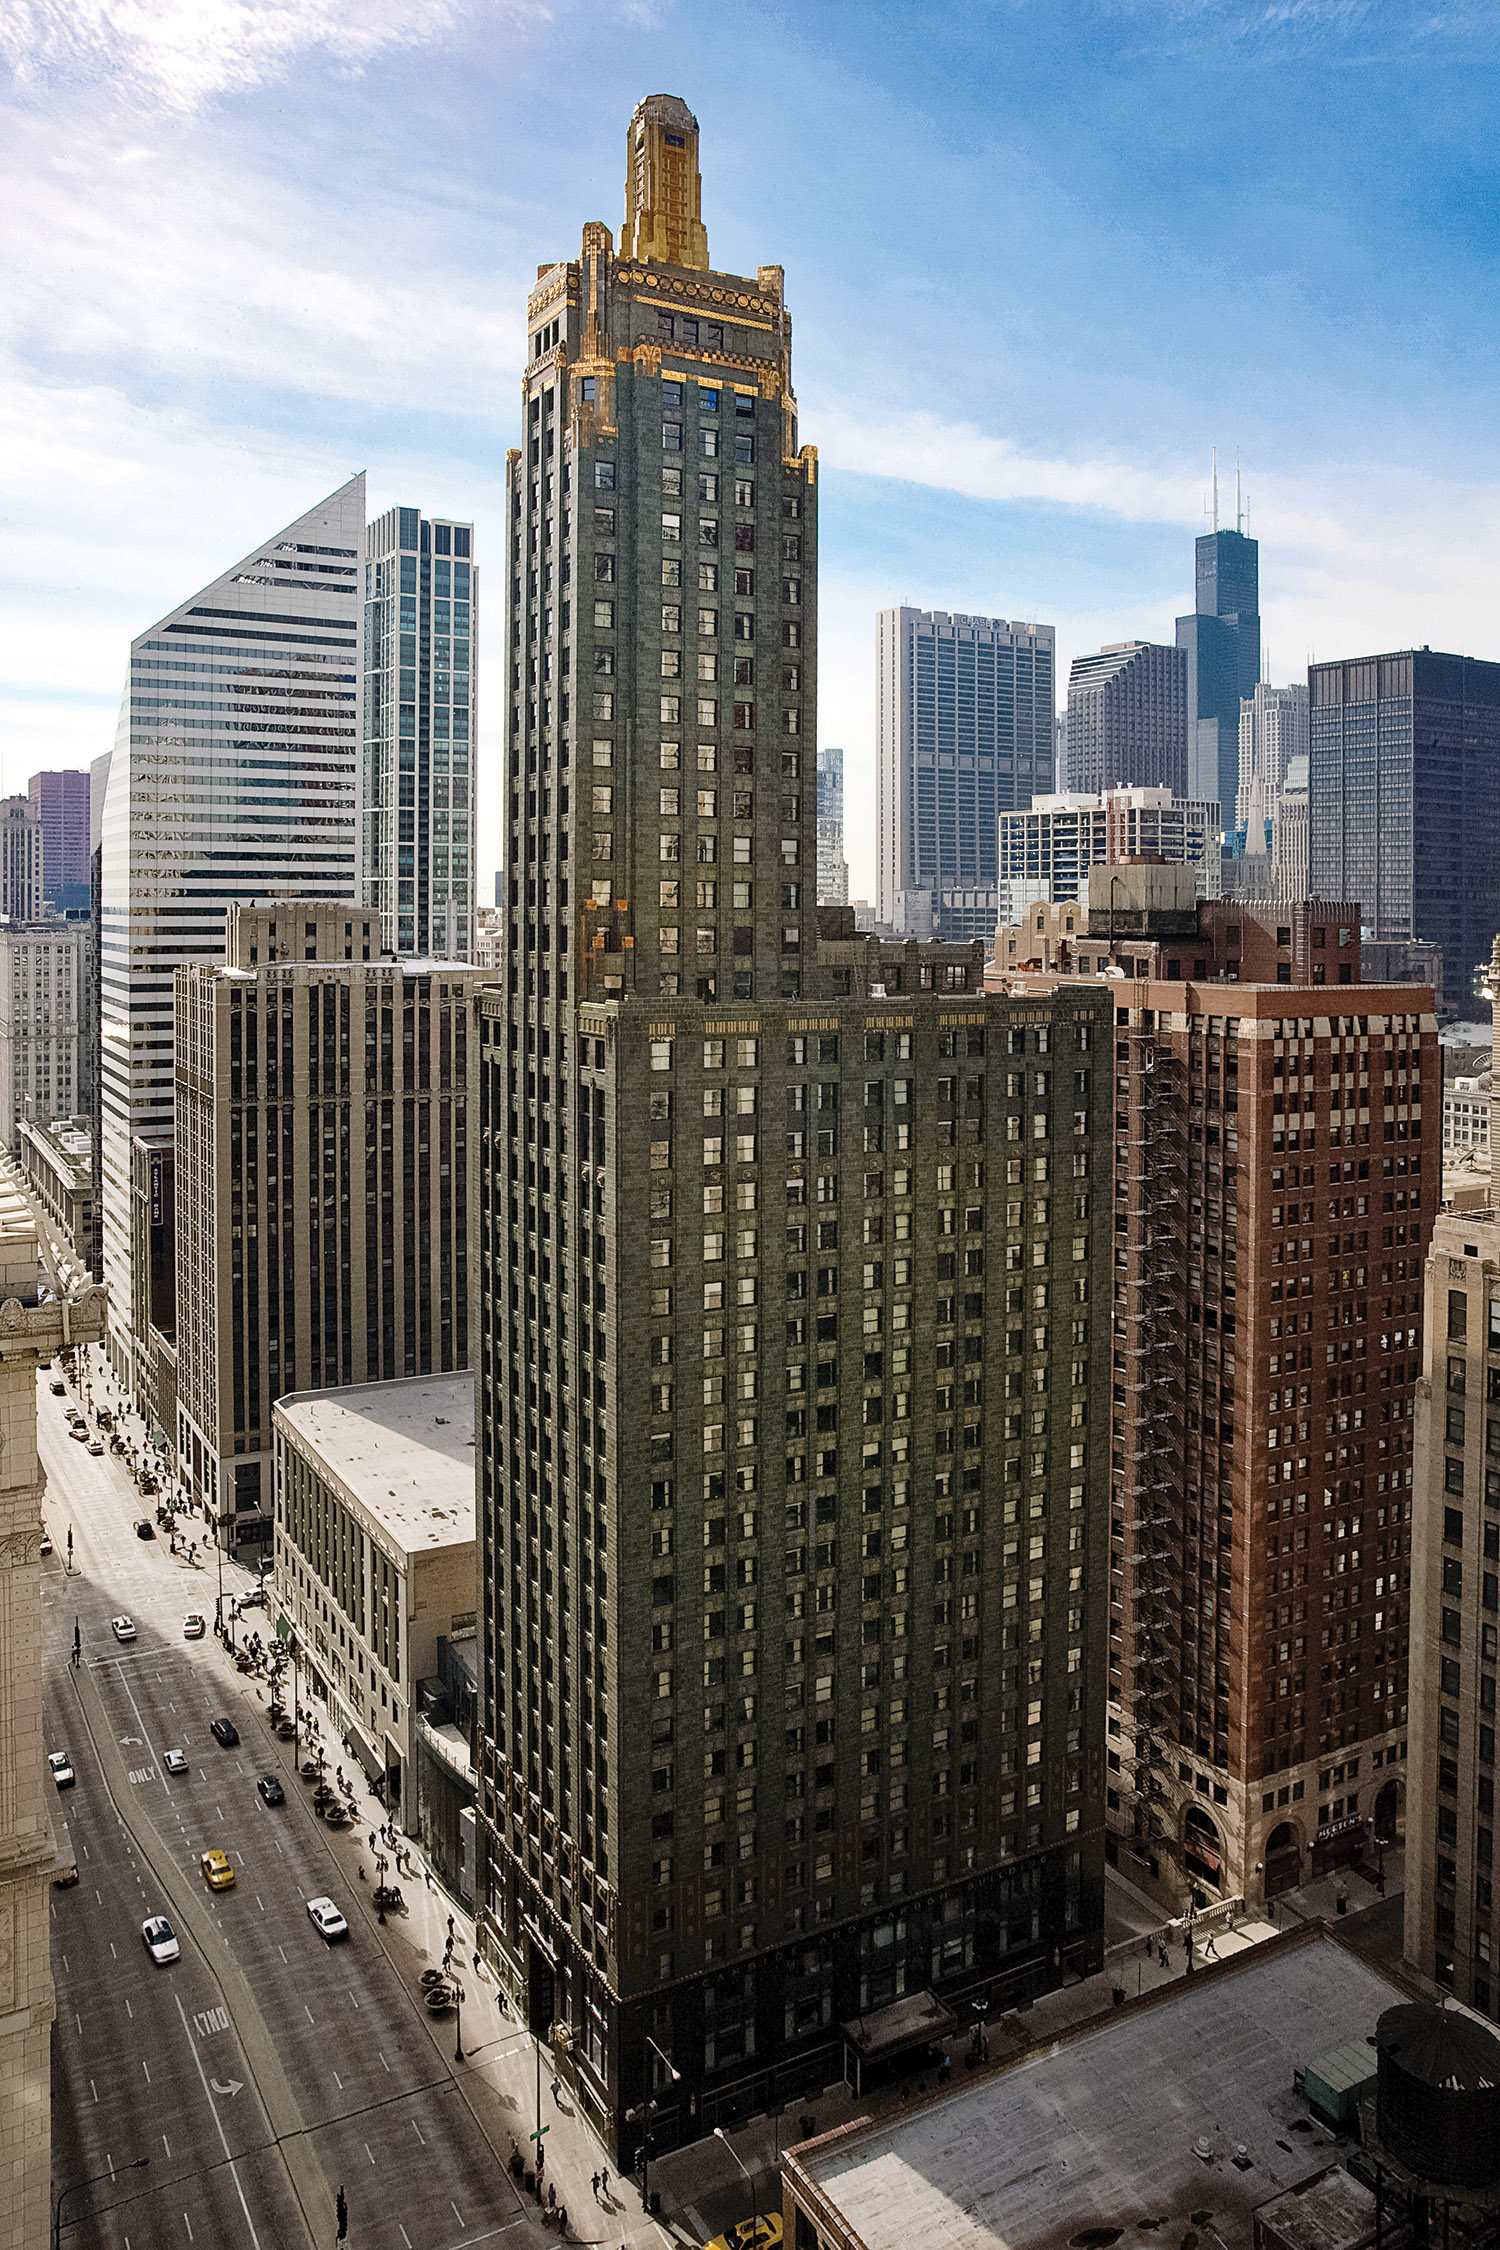 The Carbide & Carbon Building at 230 N. Michigan Ave.